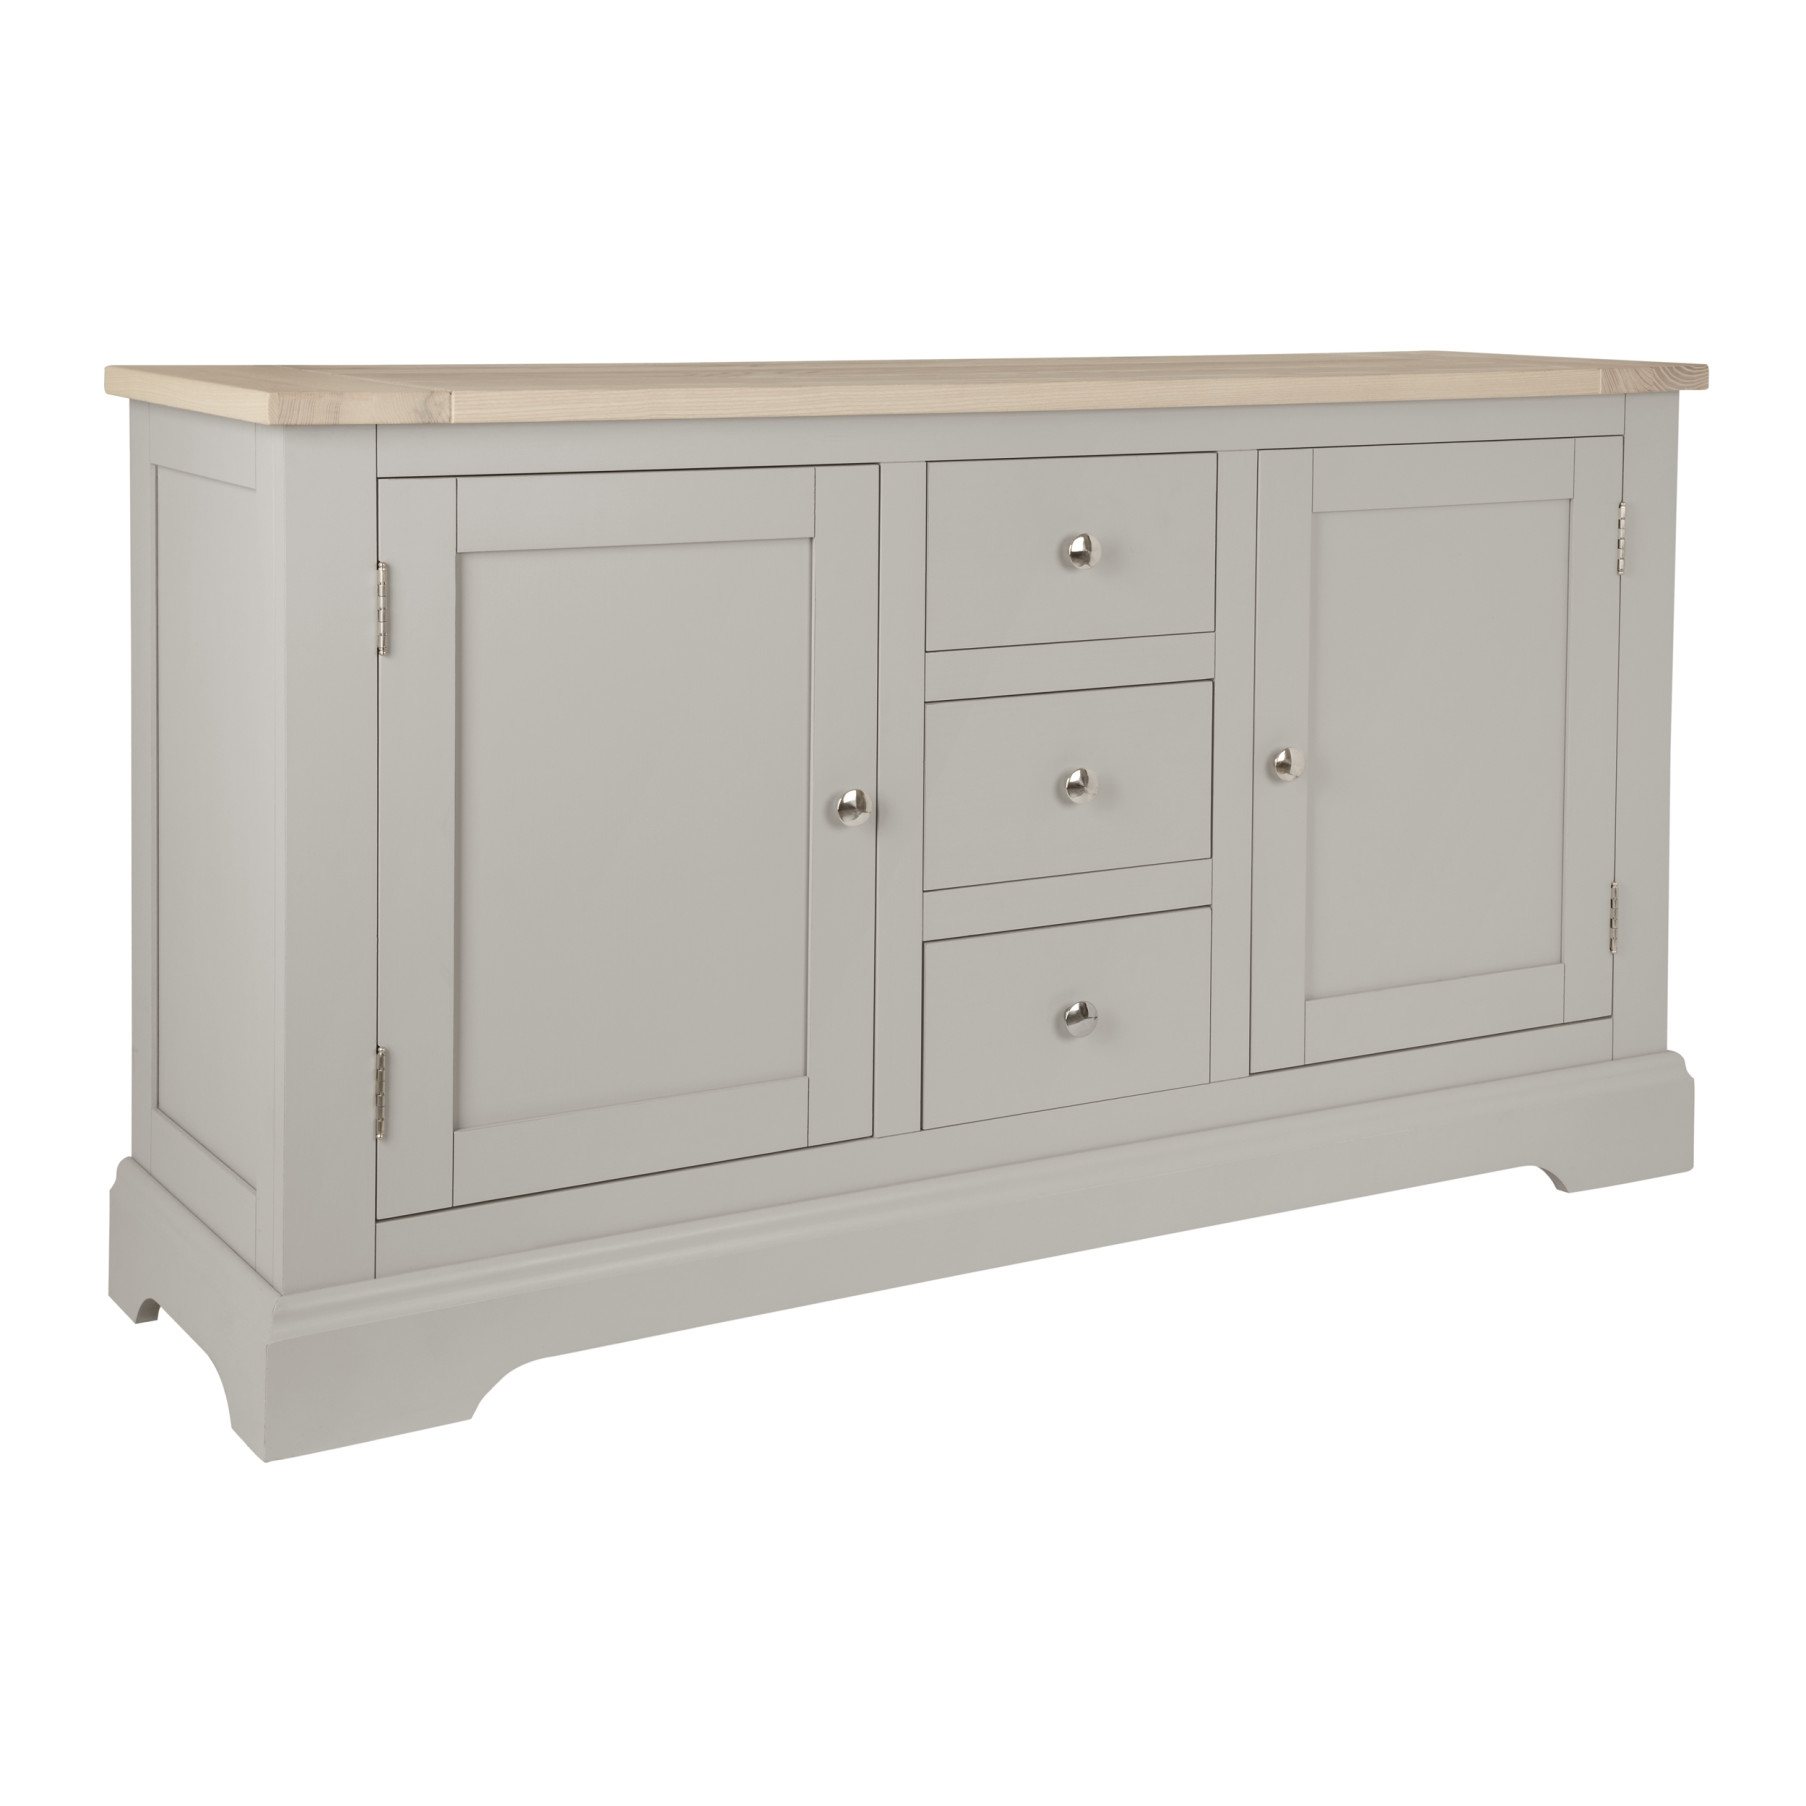 Made To Order Furniture – Dorset Pale French Grey 2 Door 3 Drawer Regarding Recent Antique White Distressed 3 Drawer/2 Door Sideboards (#13 of 20)